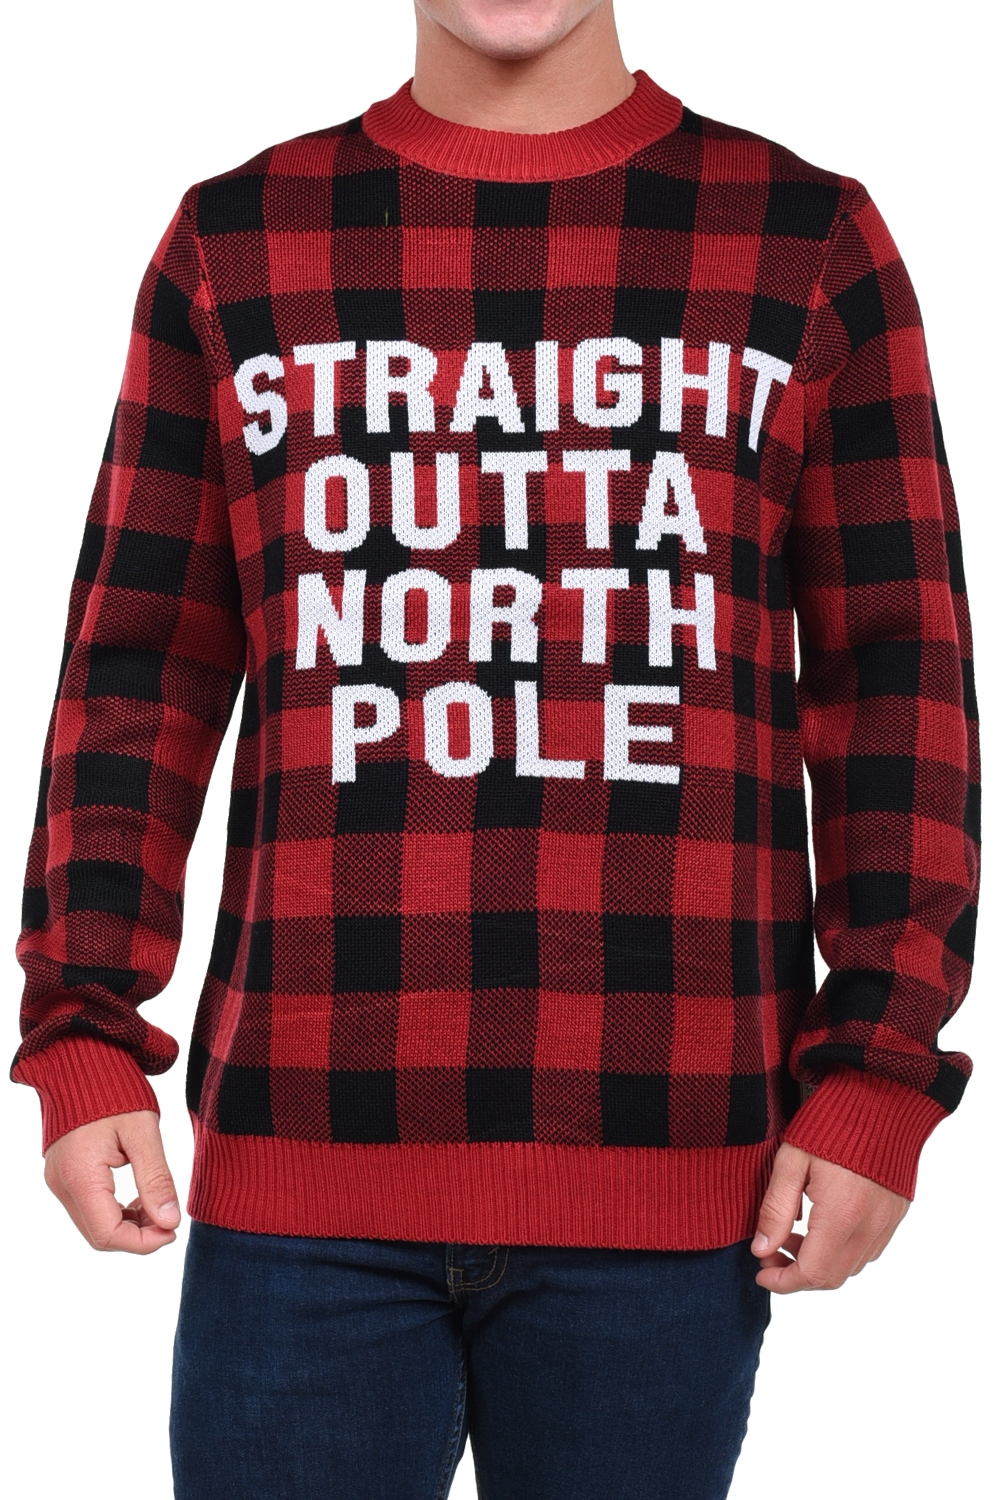 Straight Outta North Pole Christmas Sweater - PopCult Wear